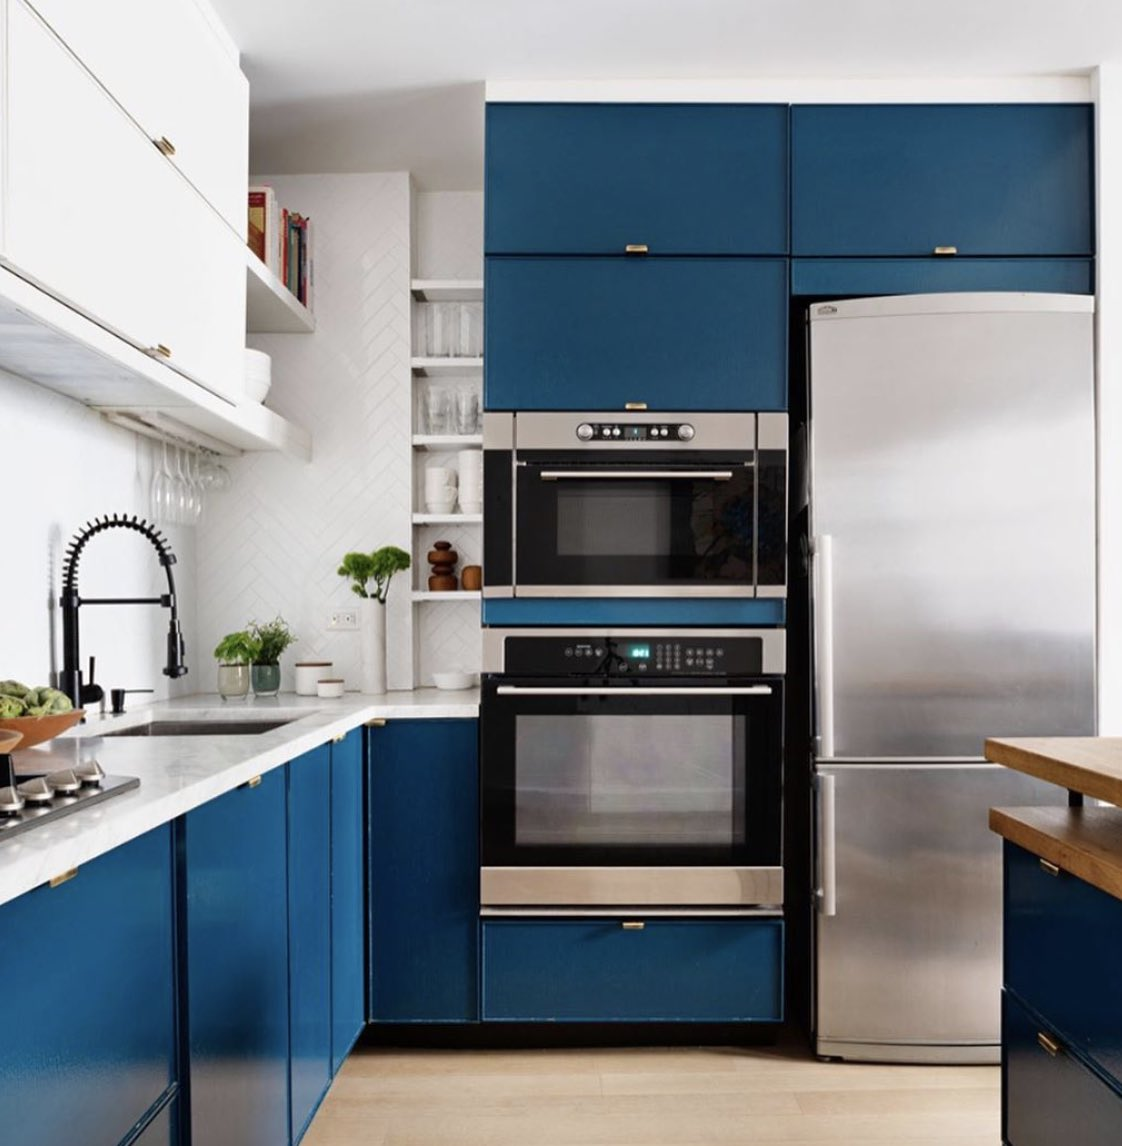 Aia Cran On Twitter With A Few Changes We Transformed A Cramped Kitchen Alcove Into A Proper Working Space We Finished Off The Kitchen With Peacock Blue Cabinets Crisp Herringbone Tile And